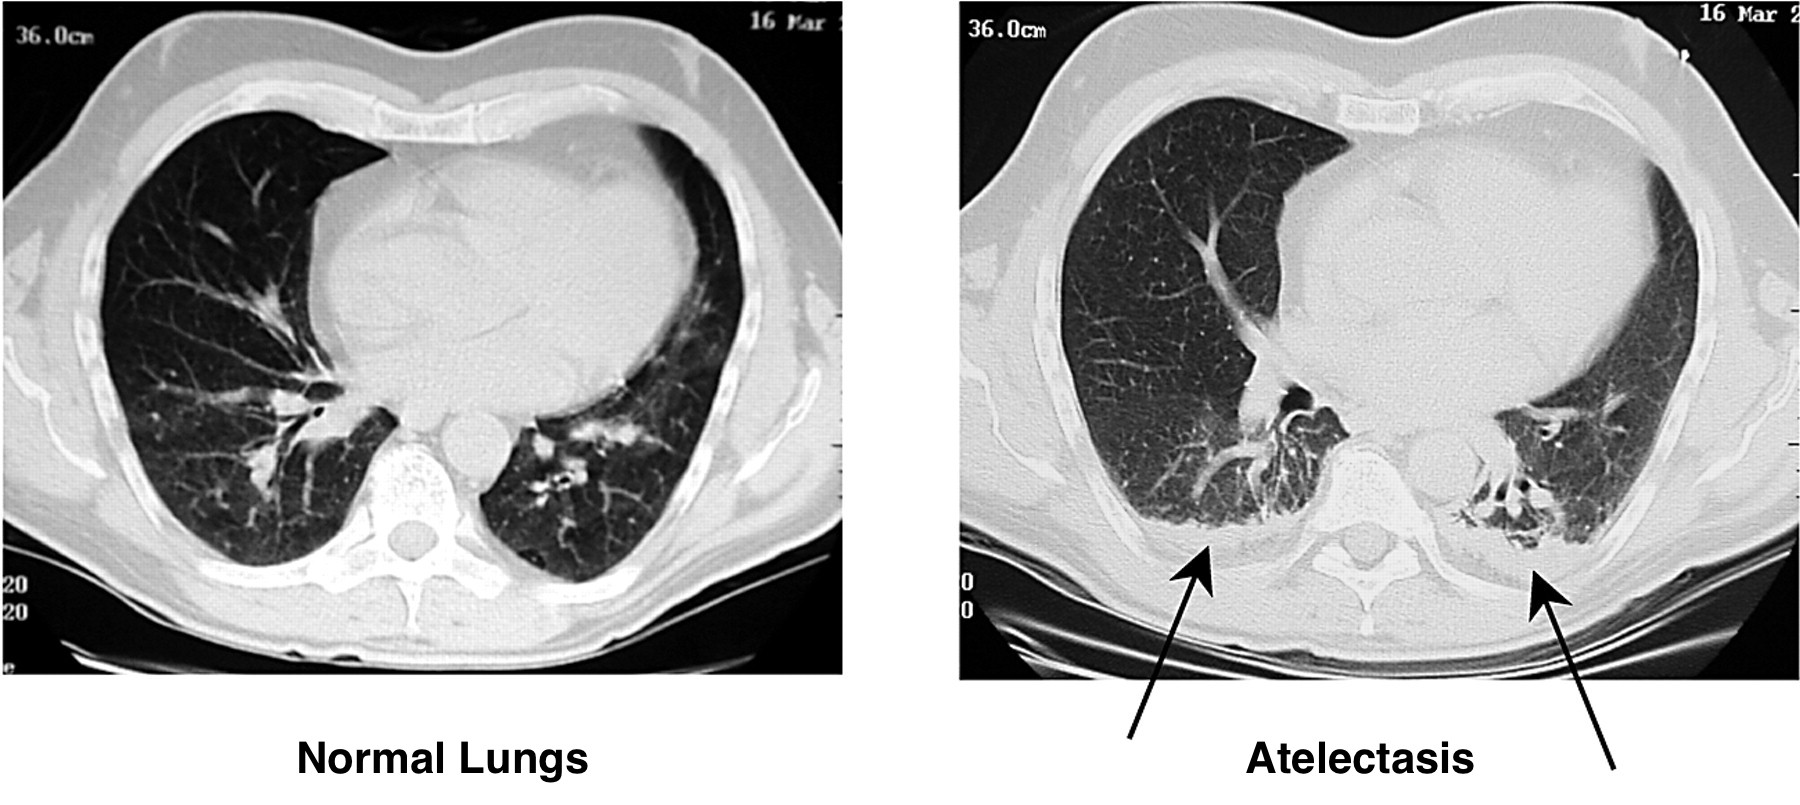 Visual appearance of atelectasis on a CT scan (right pane). Normal lungs provides as reference (left pane, source)